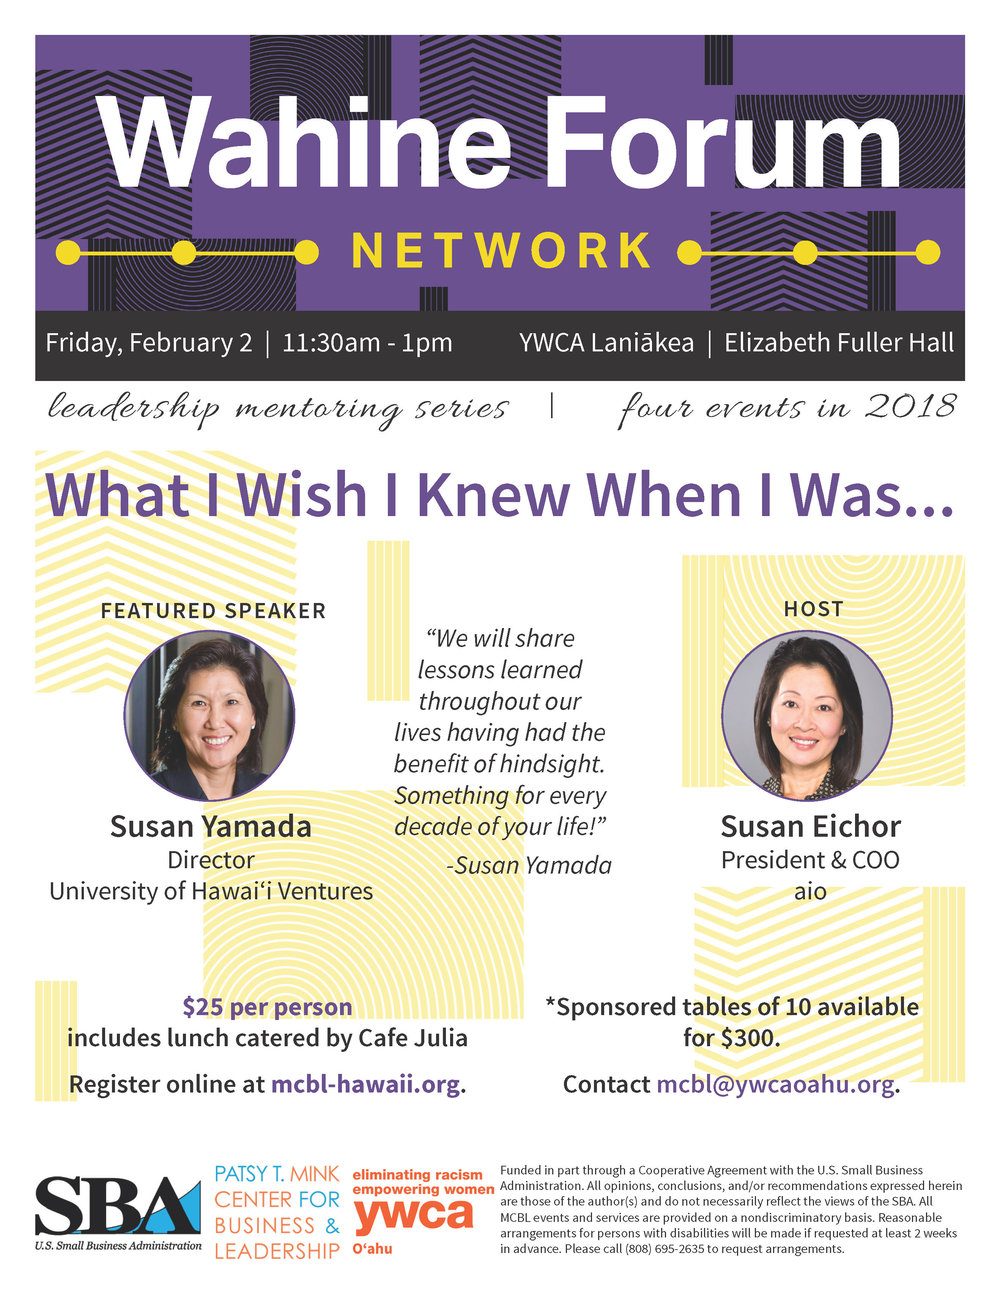 Wahine Forum Network - What I Wish I Knew When I Was... Final.jpg